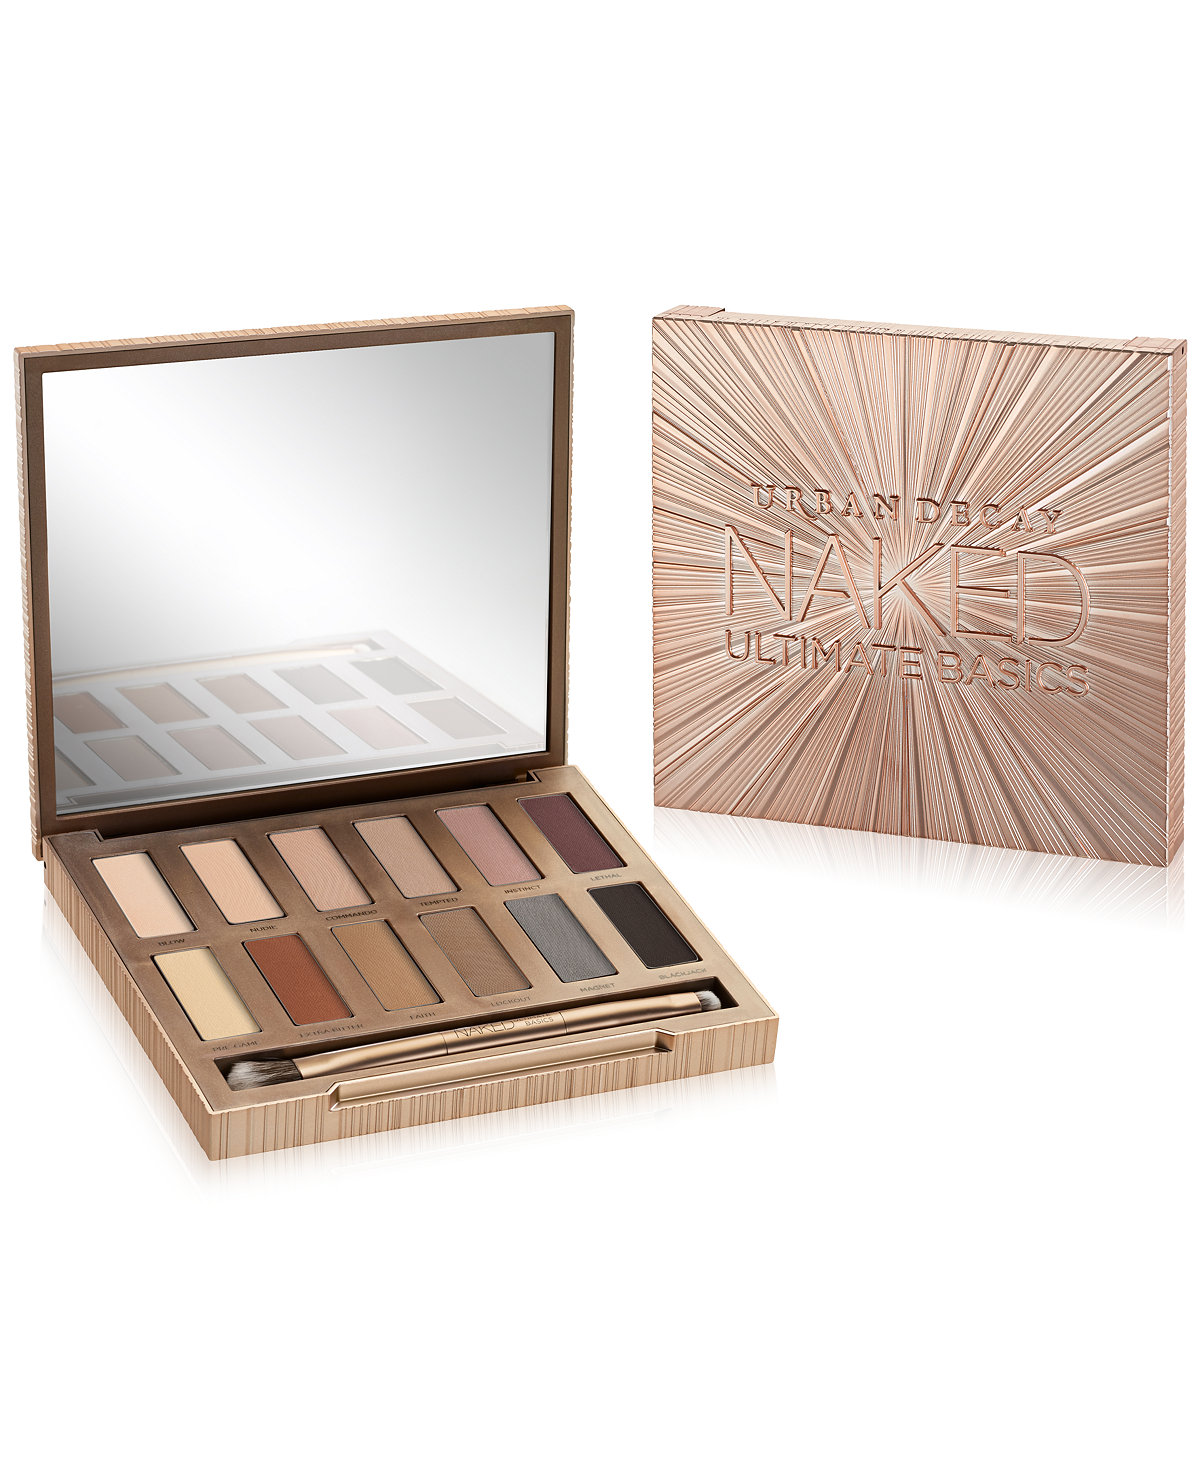 Urban Decay Palette Just $22.9...